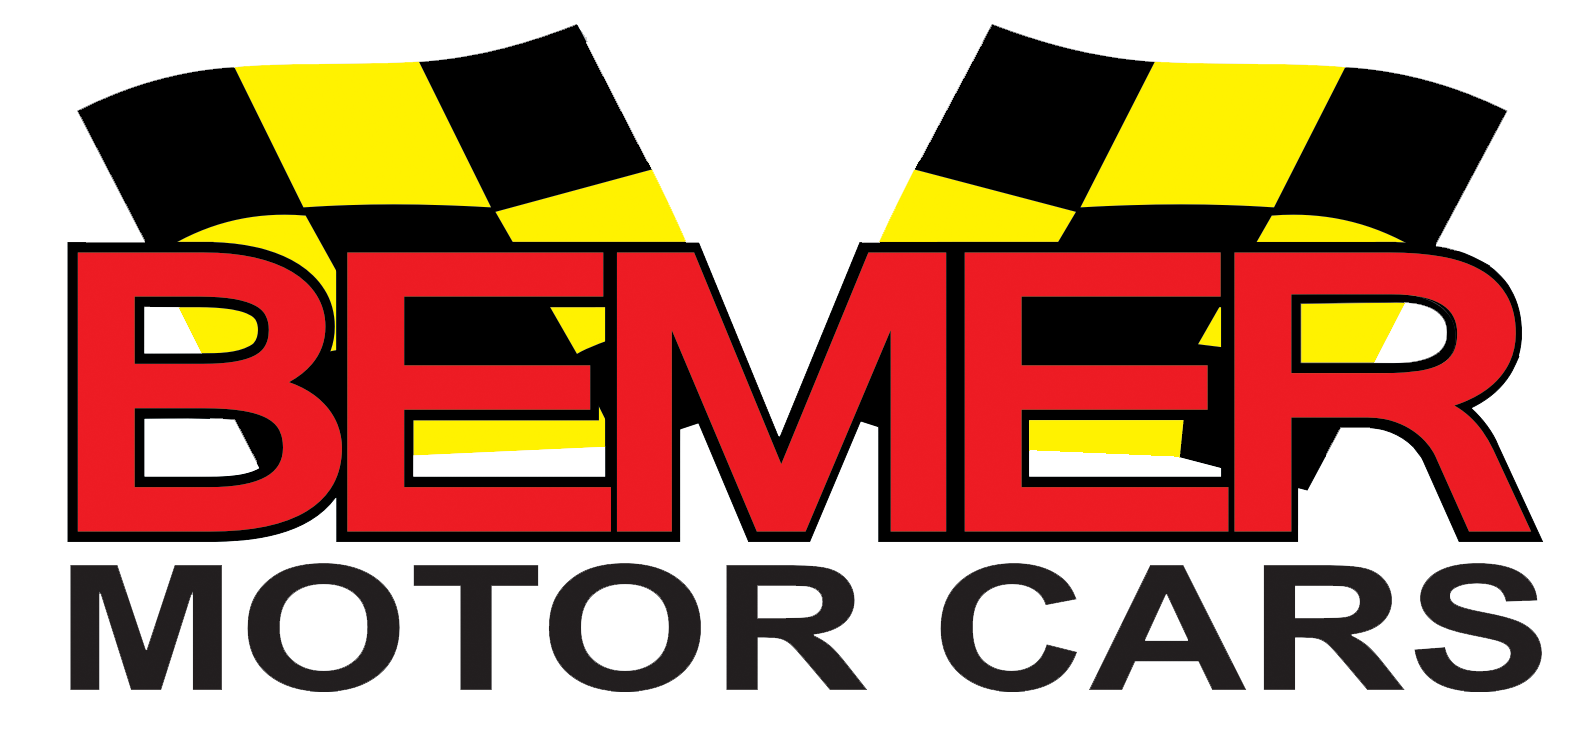 Bemer Motor Cars - Houston, TX: Read Consumer reviews, Browse Used